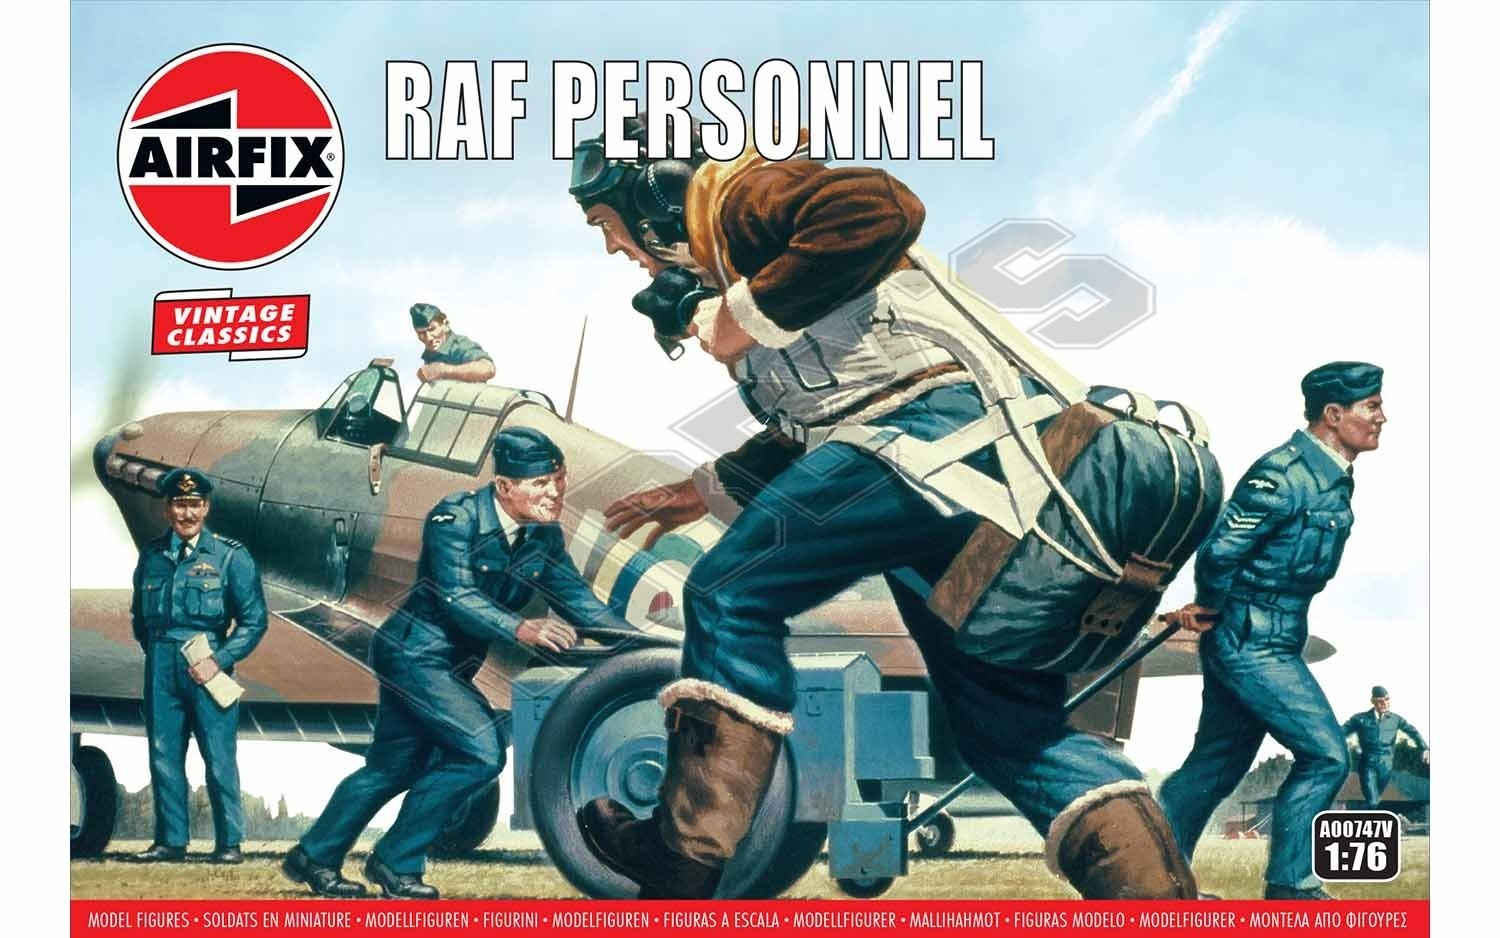 Airfix - Raf Personnel Cover